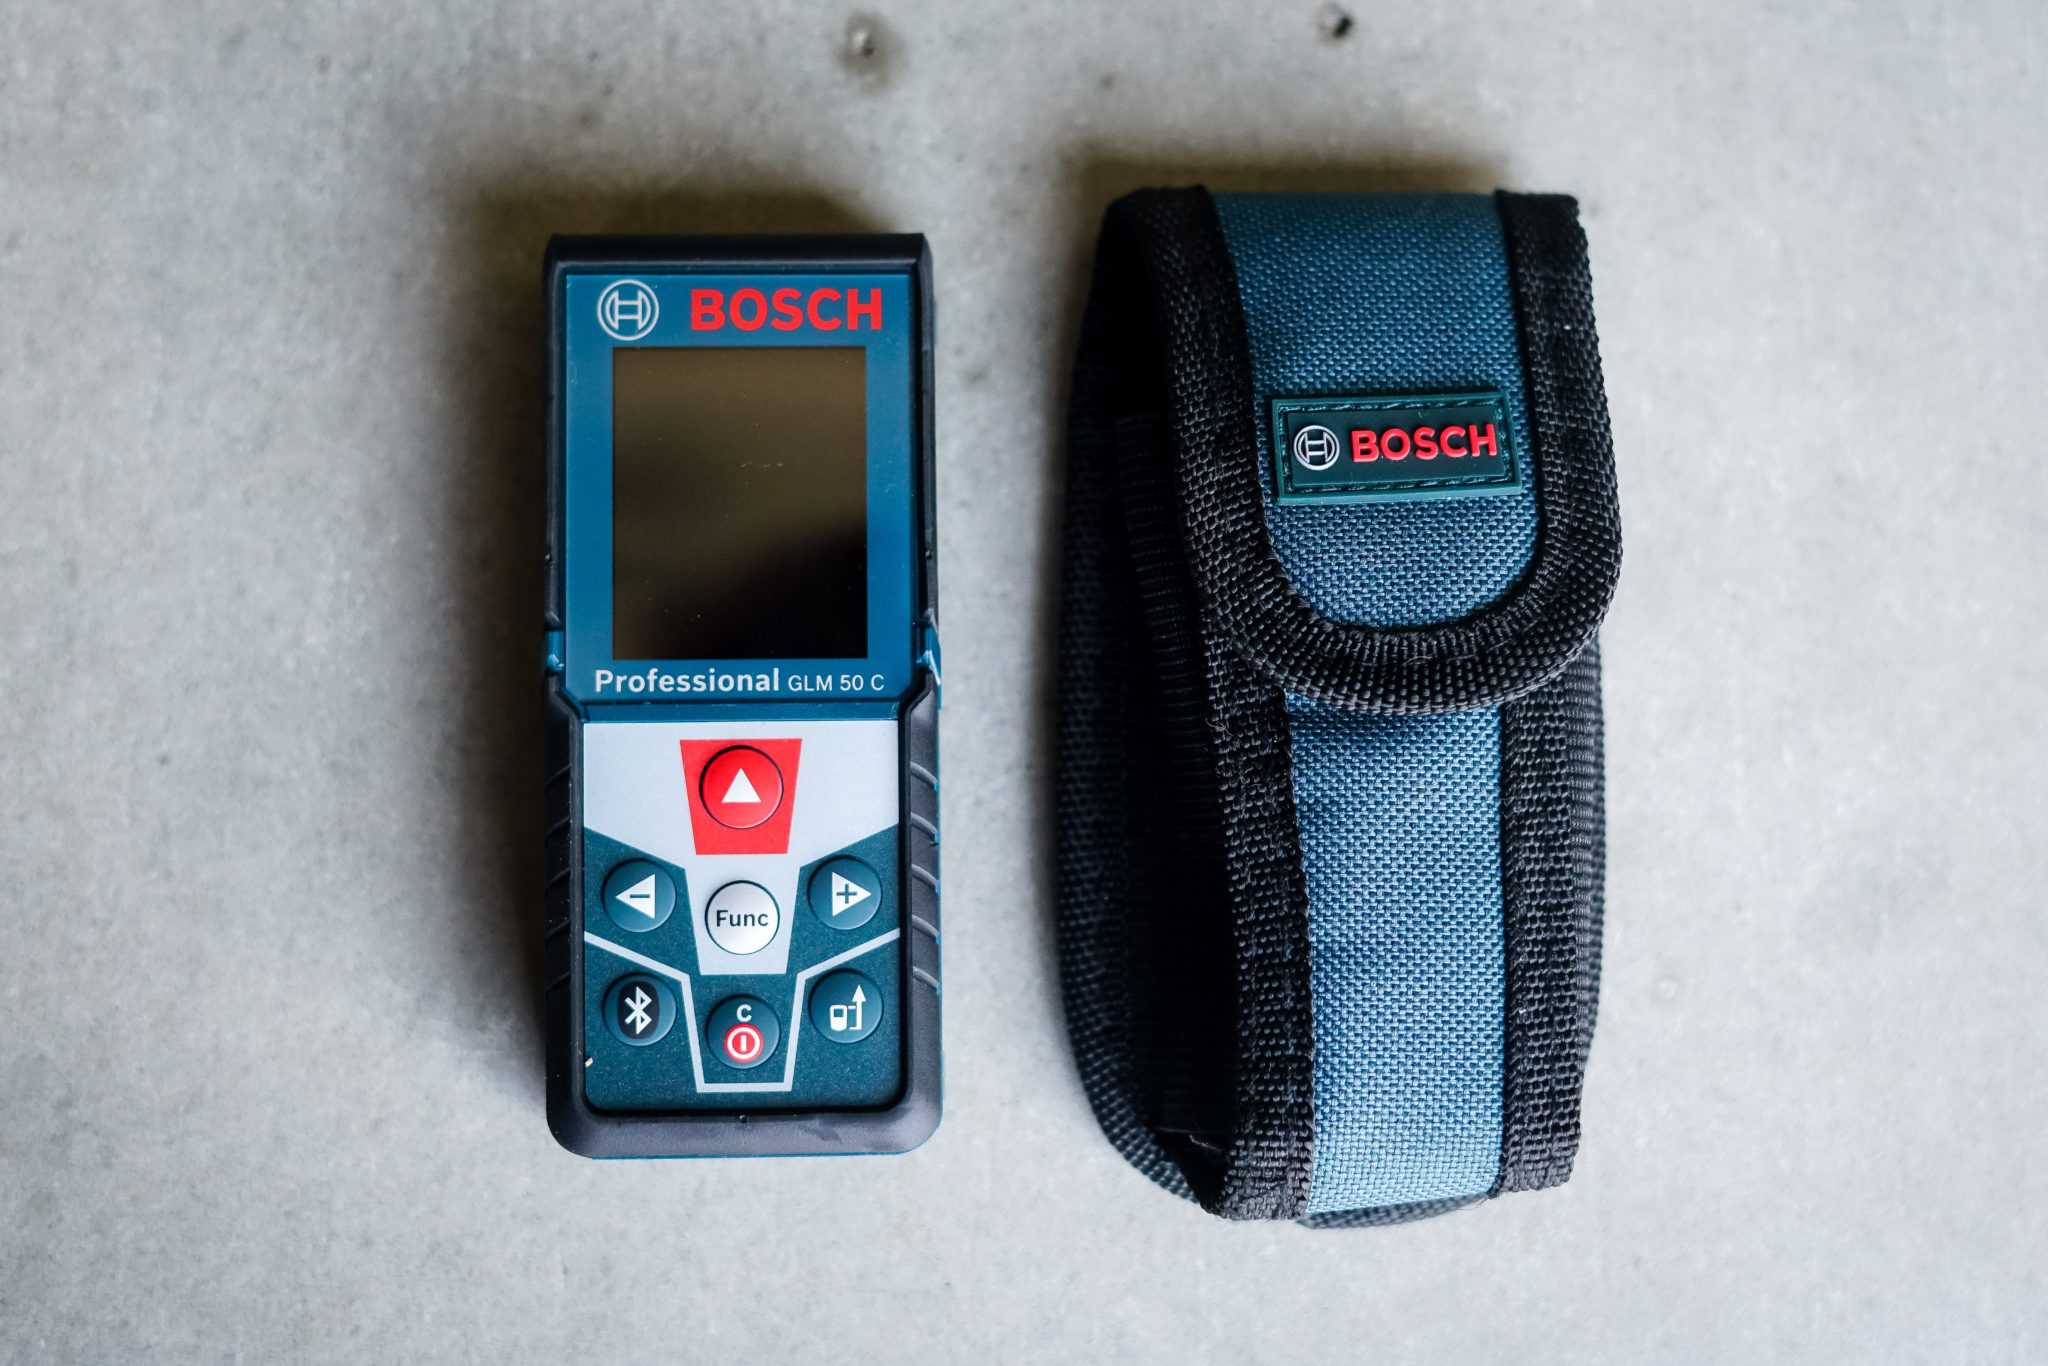 Bosch 165 ft. Laser Measurer